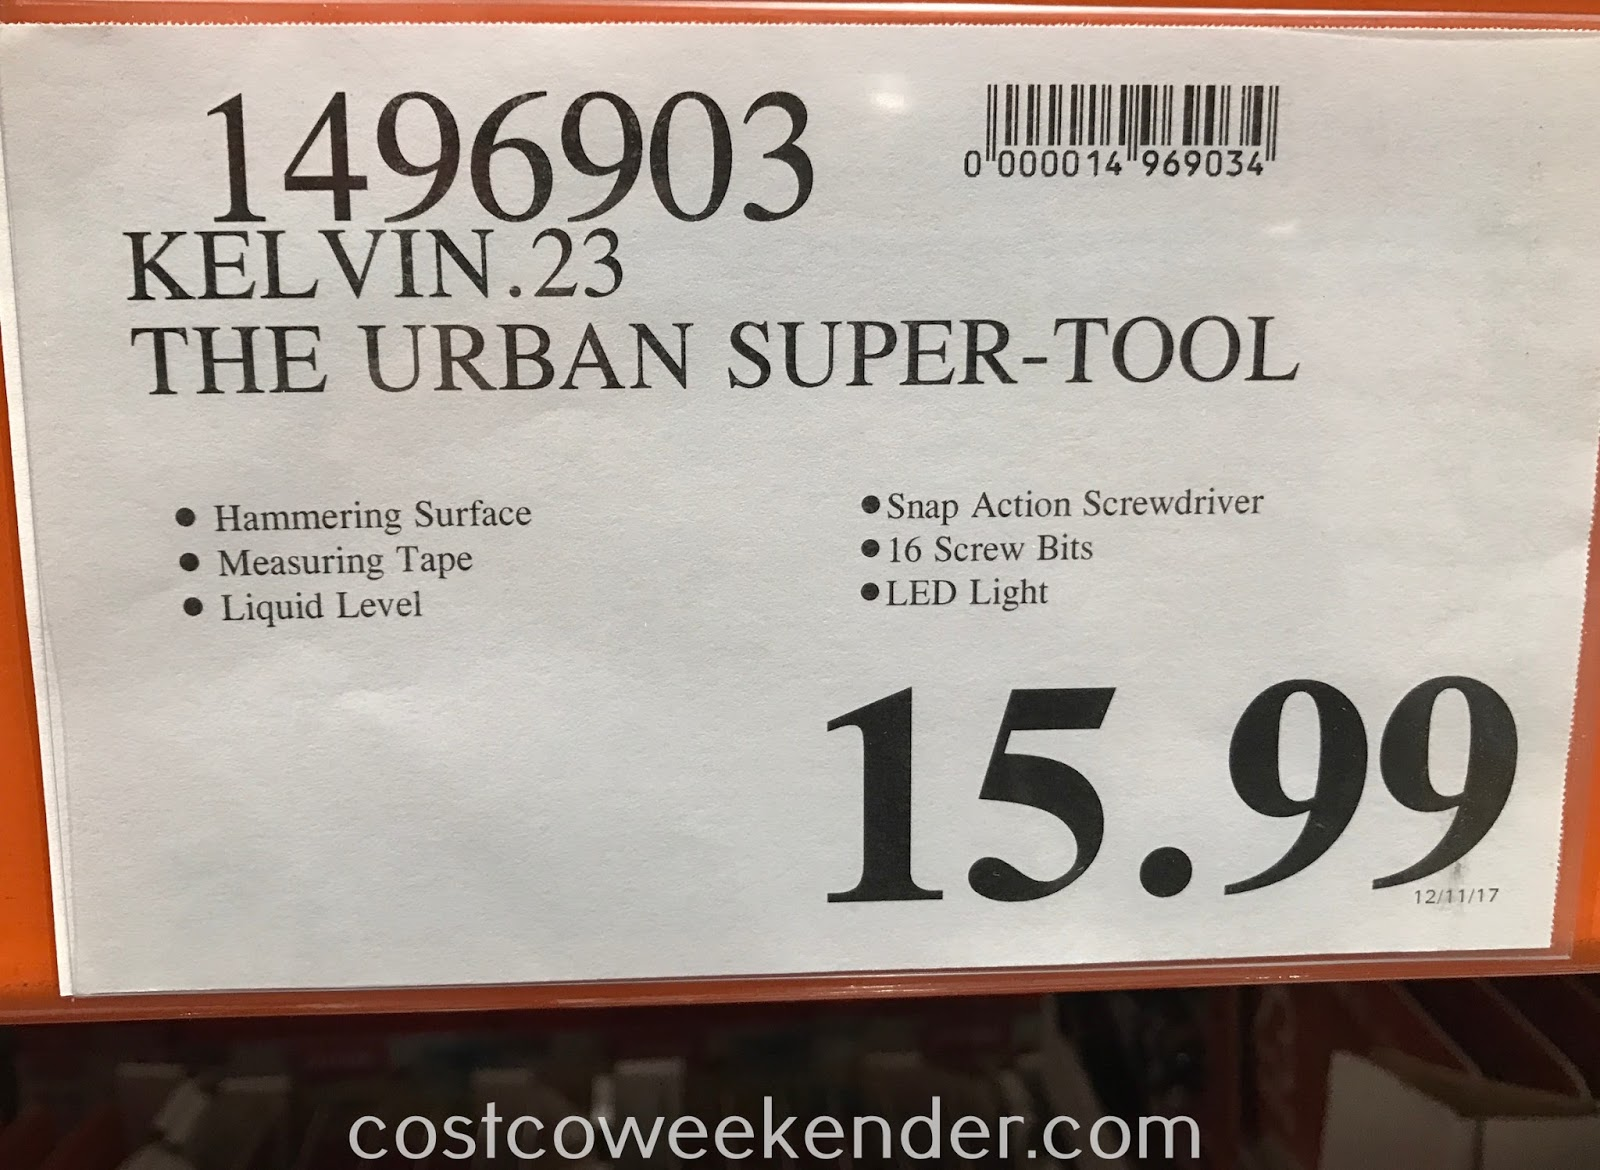 Deal for the Kelvin.23 Urban Super Tool at Costco